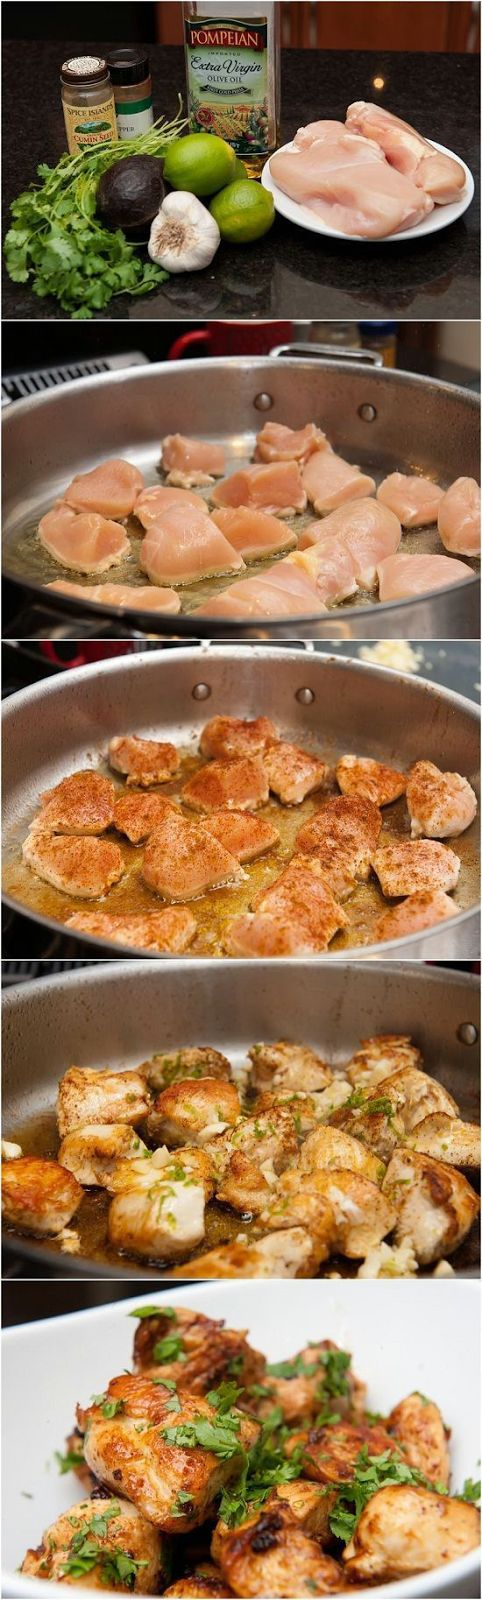 Quick Lime Cilantro Chicken ~ Add some fresh flavours of lime and cilantro to chicken!